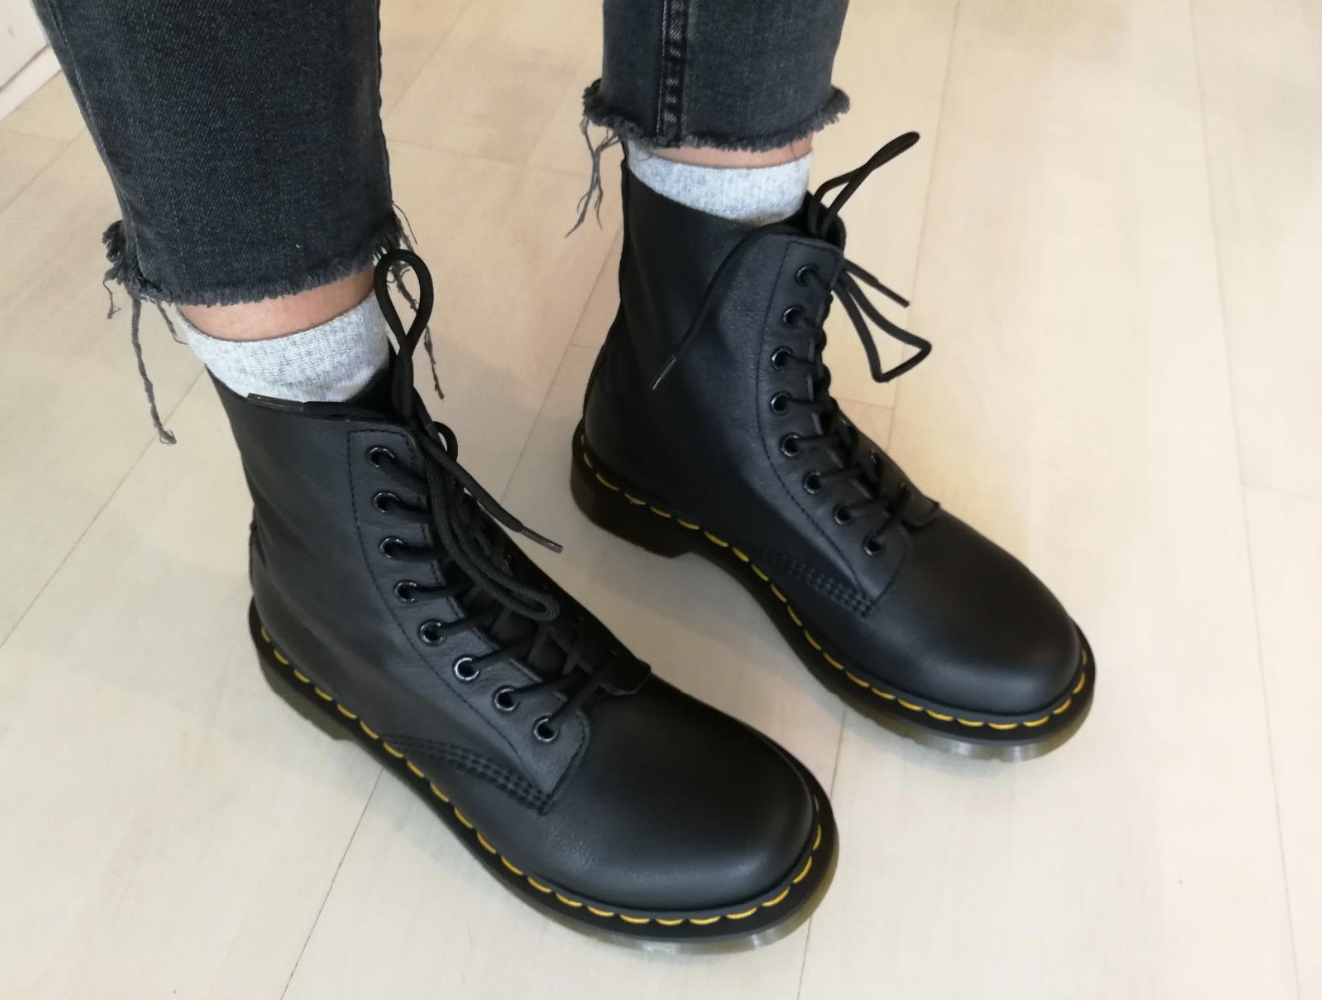 reviewer pic of the lace-up Docs in black with yellow stitching around the sole